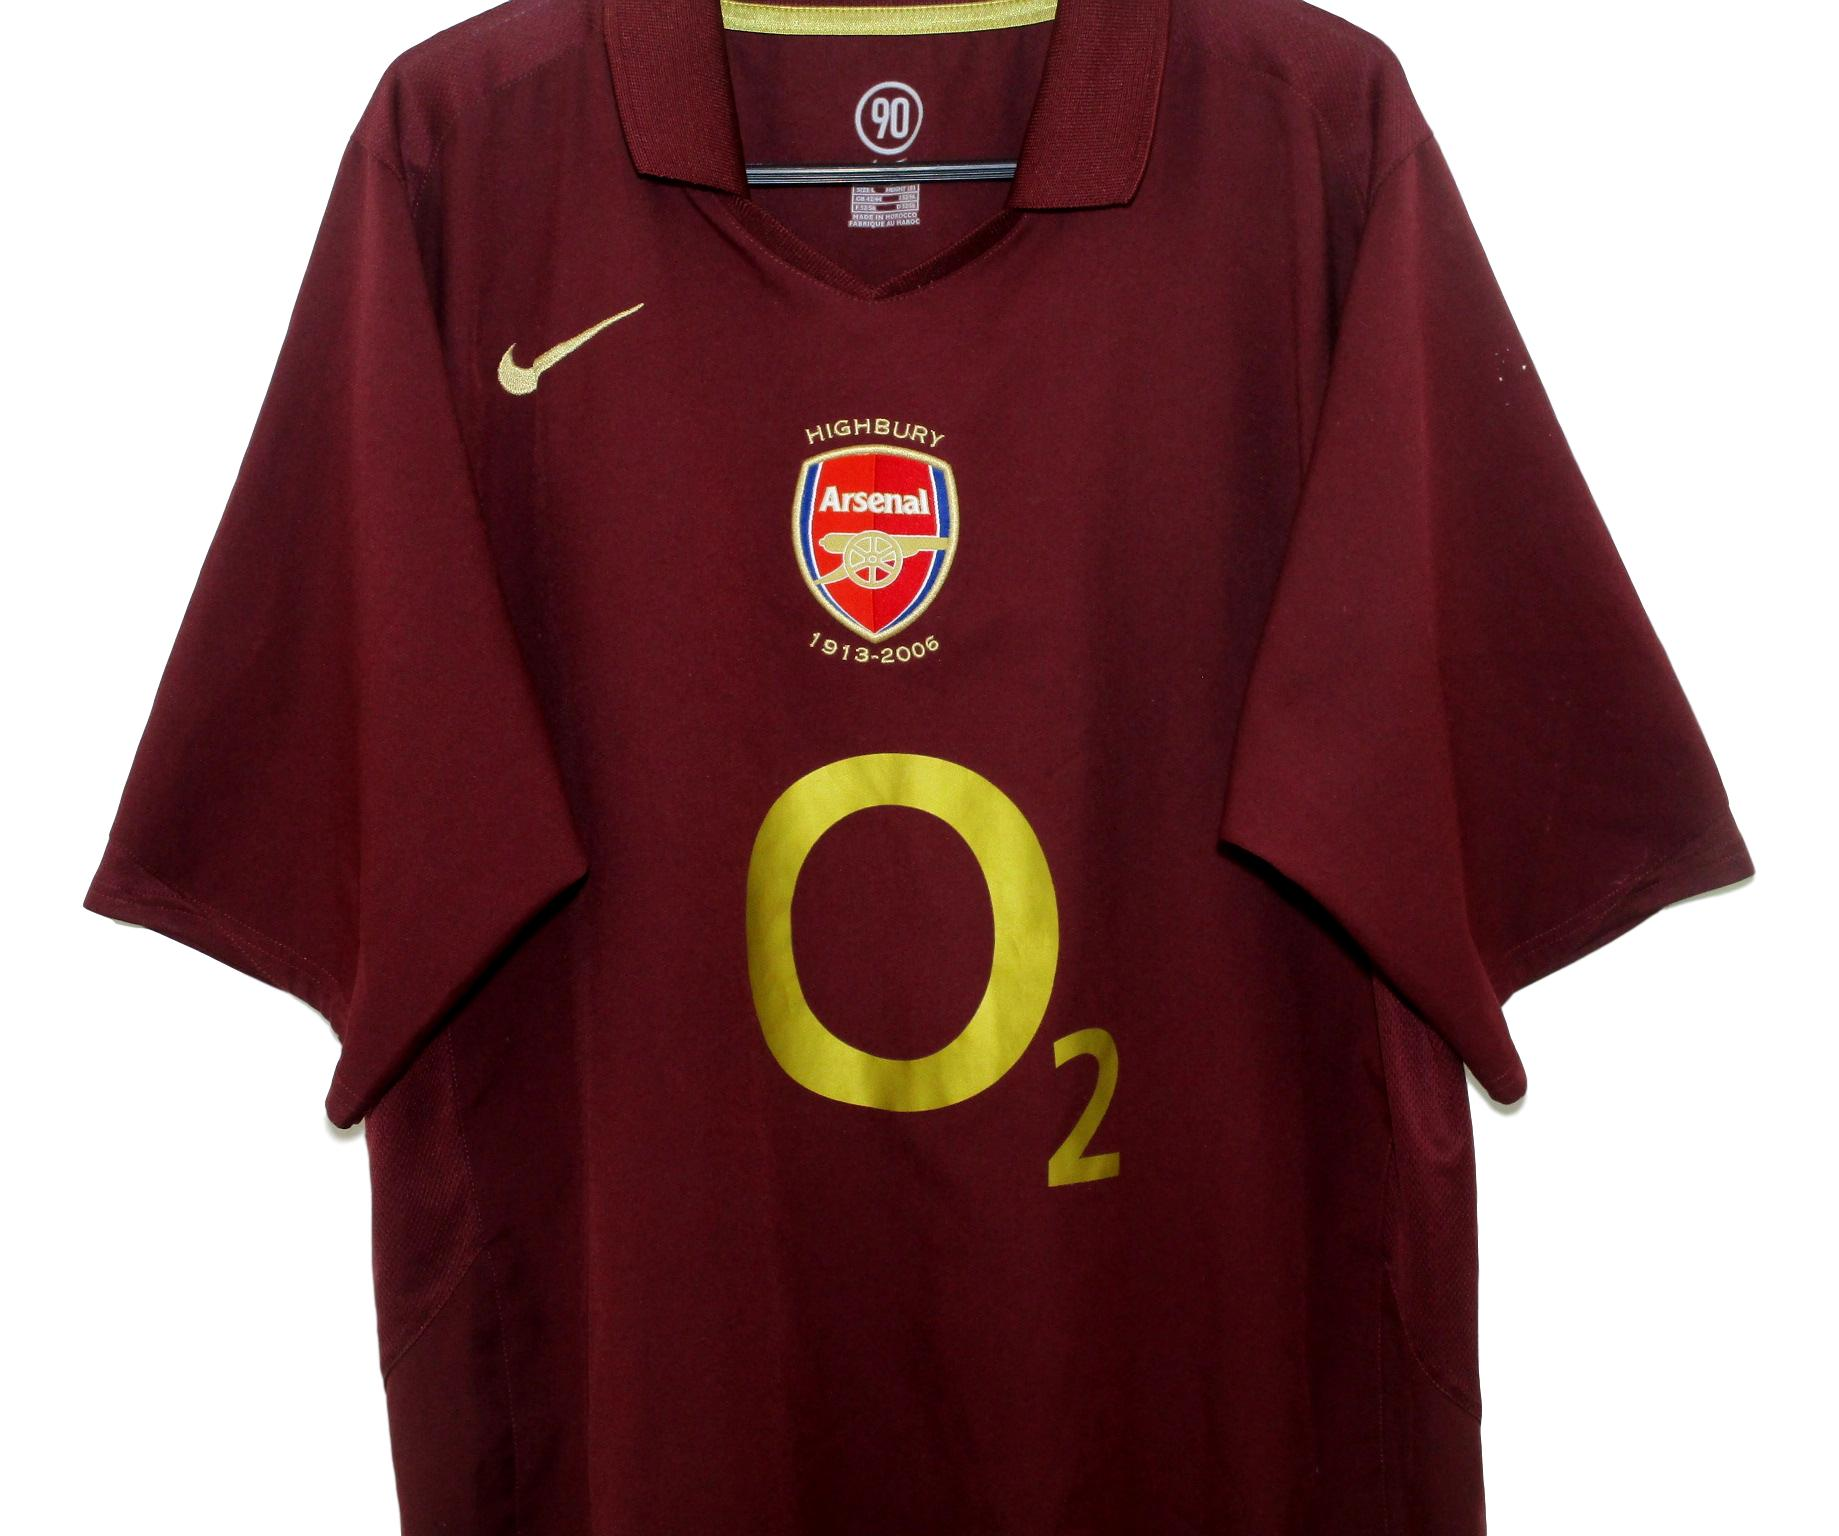 best website 99be6 c4516 2005-06 Arsenal Home Shirt (L) | The Kitman Football Shirts